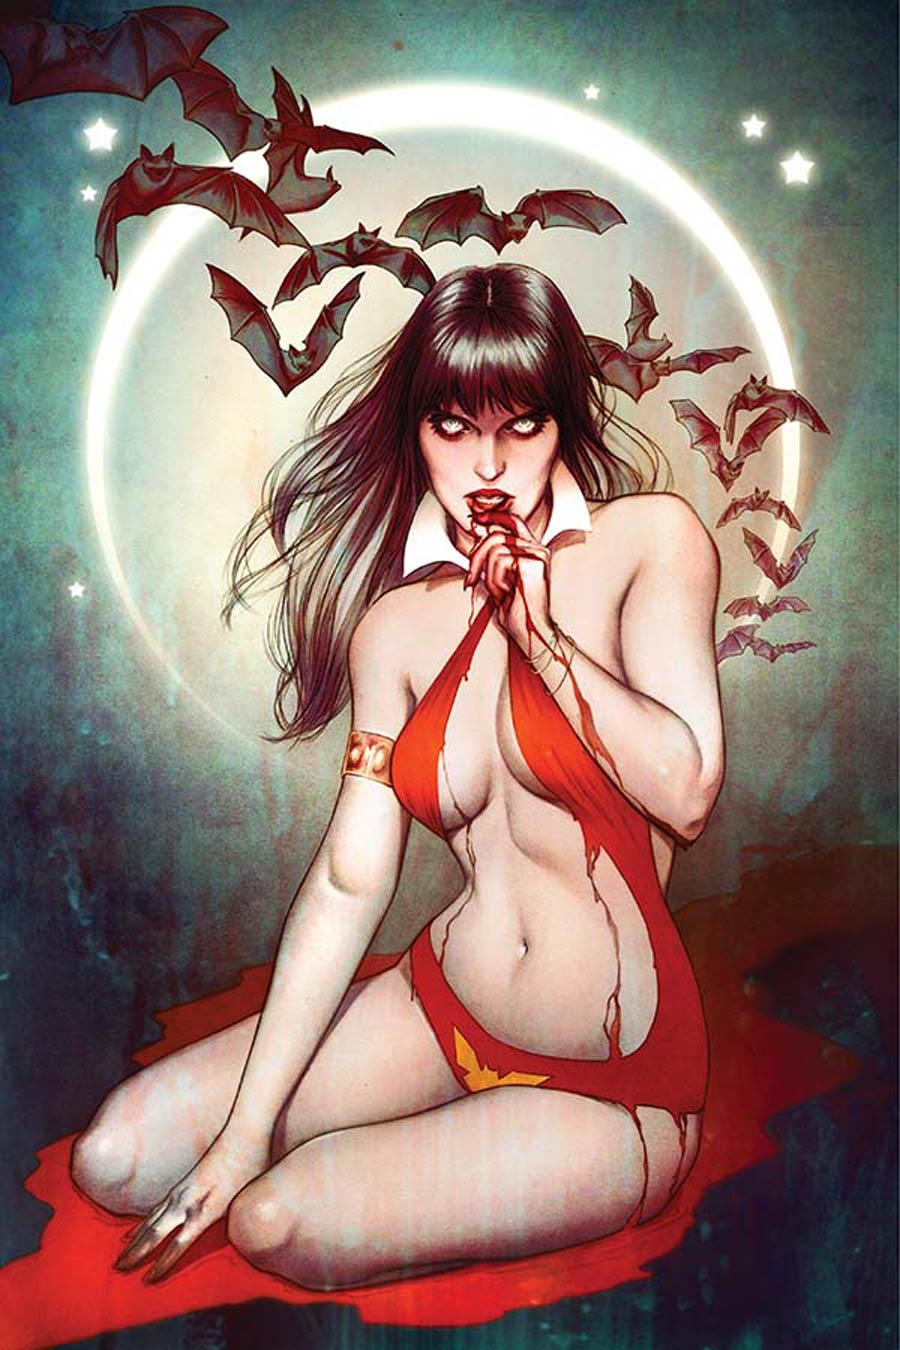 Vampirella Vol 5 #1 Cover V High-End Jenny Frison Virgin Art Ultra-Limited Variant Cover (ONLY 50 COPIES IN EXISTENCE!)